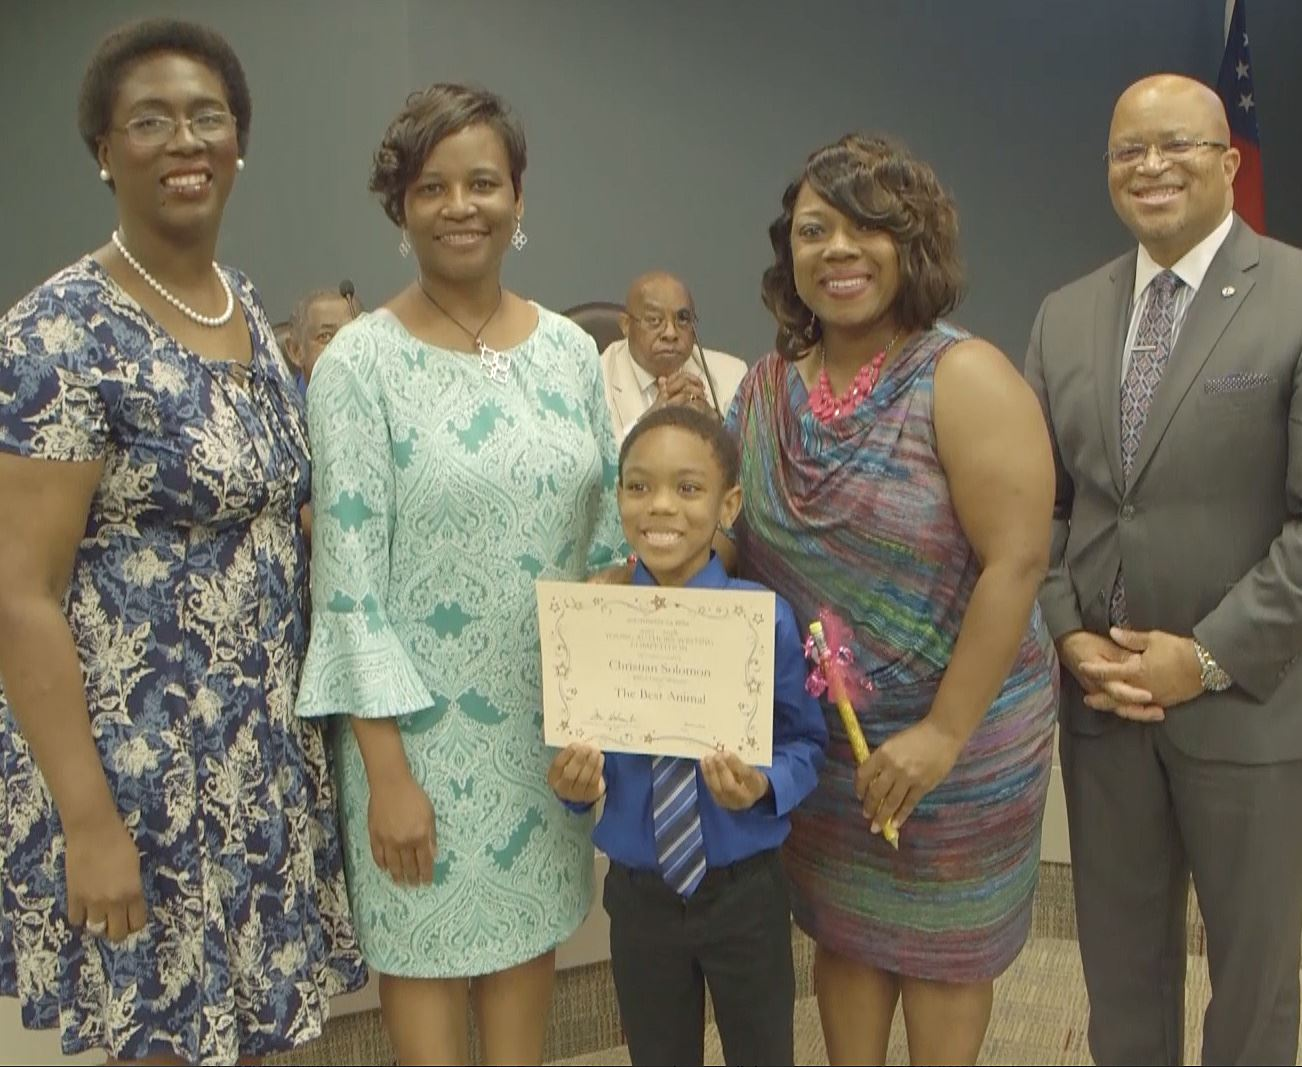 Christian Solomon stands with his principal, superintendent, board chair and mom